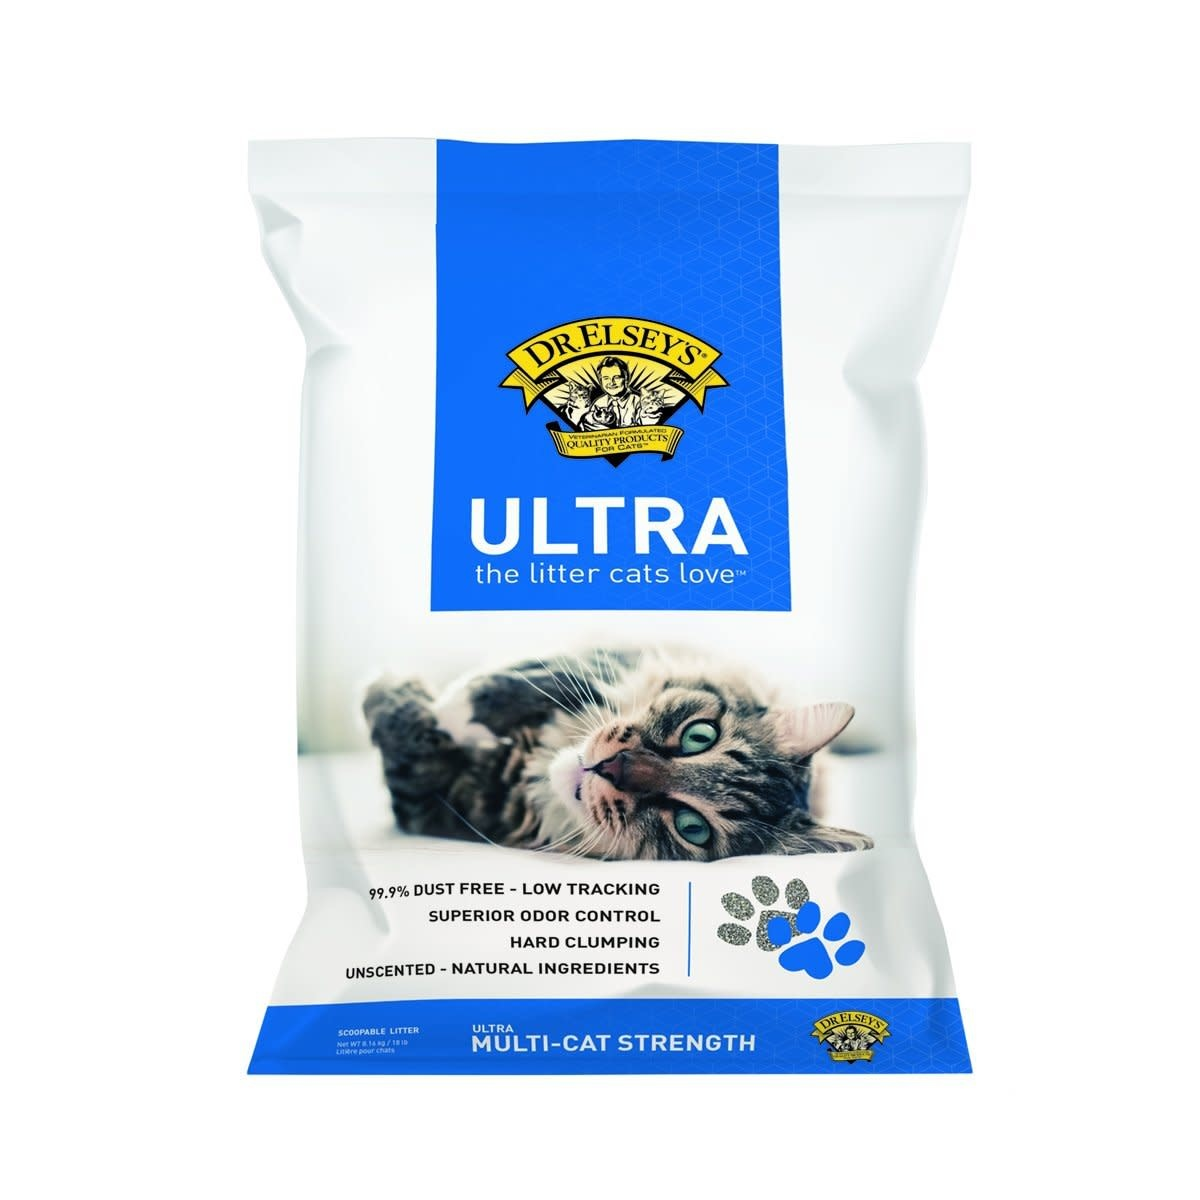 Dr. Elsey's Precious Cat Dr. Elsey's Precious Cat Ultra 18 lb Unsc